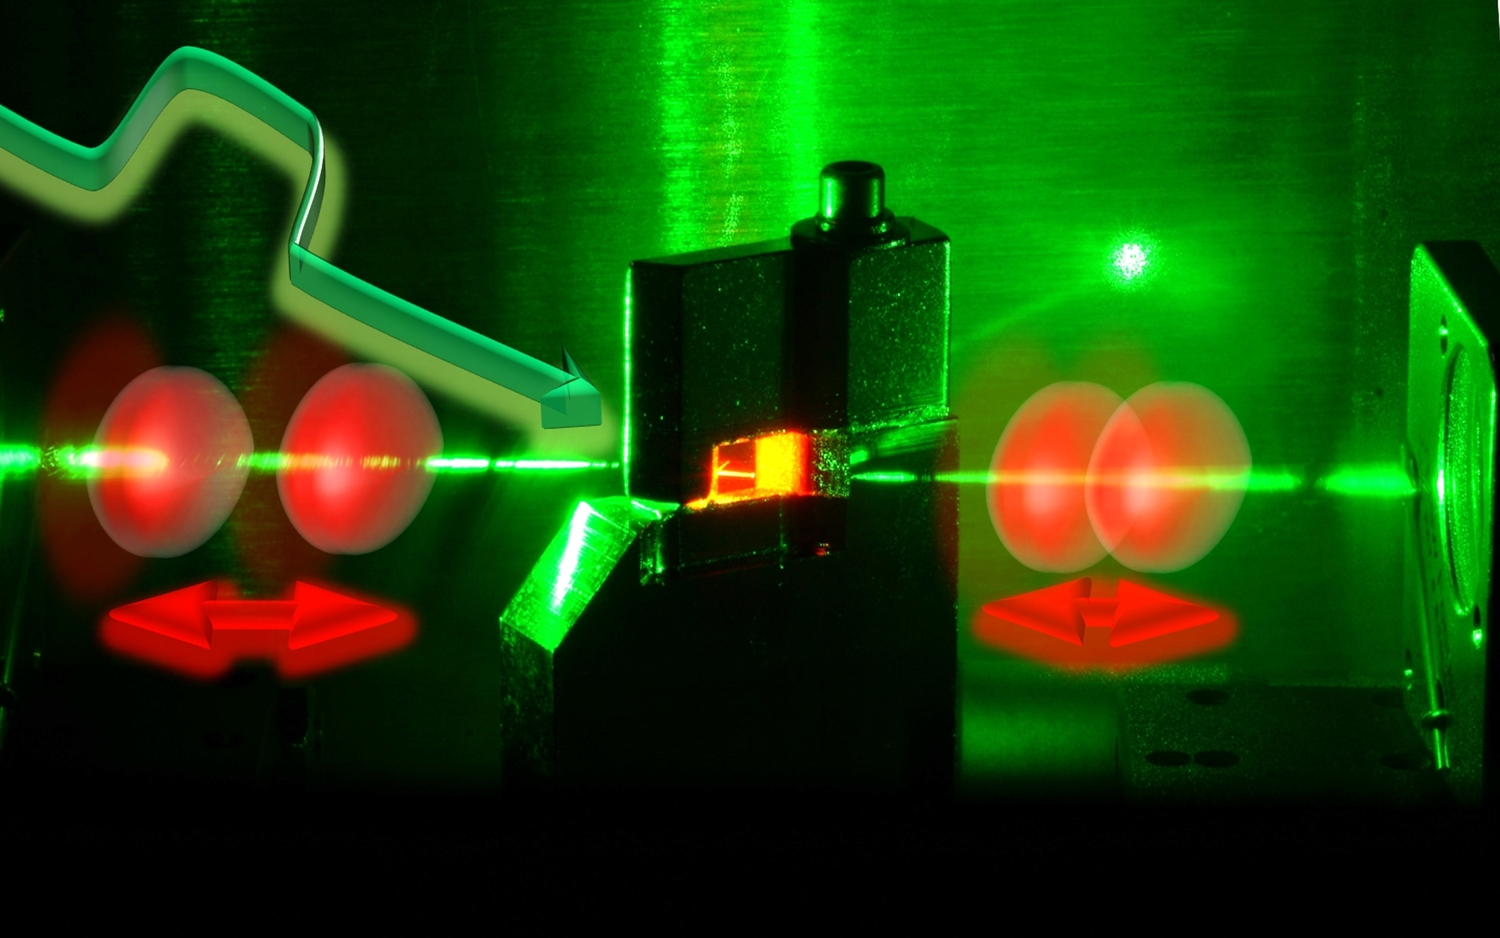 Light pulses can form pairs in ultra-short pulse lasers. The pulse intervals (red) can be precisely adjusted by making certain changes to pump beam (green).